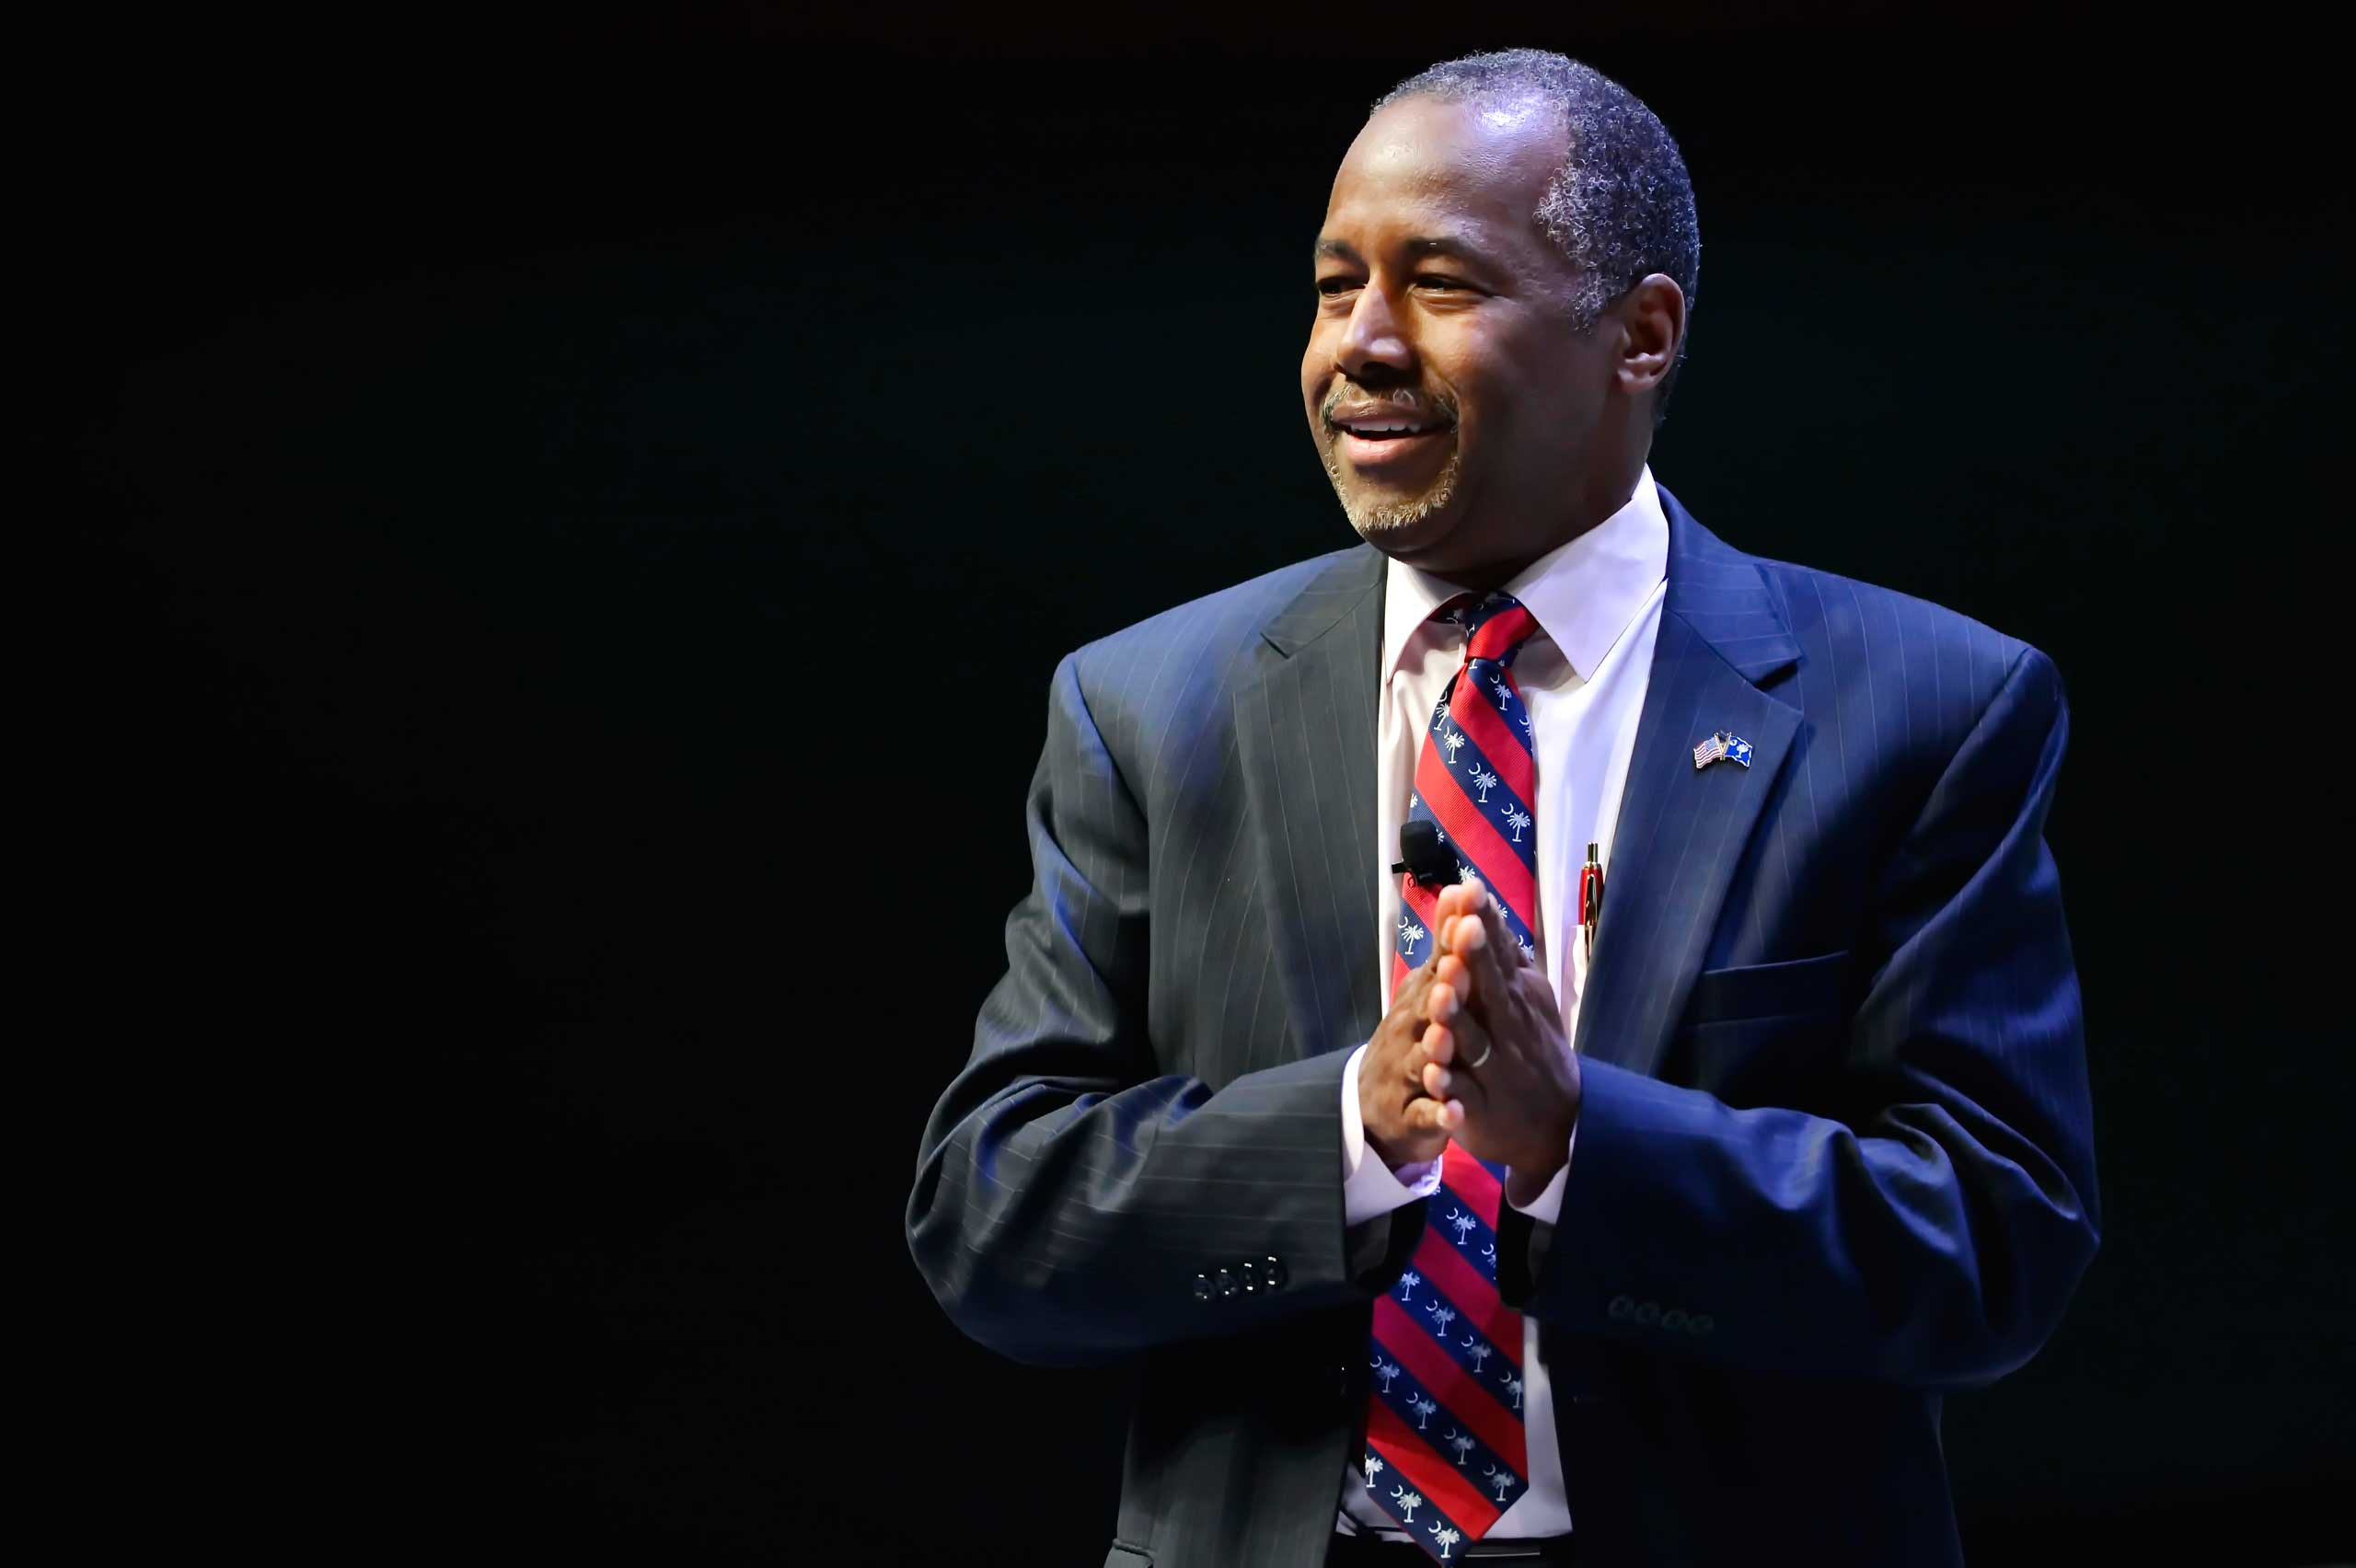 Republican presidential candidate Ben Carson speaks at a presidential forum sponsored by Heritage Action at the Bon Secours Wellness Arena, Sept. 18, 2015, in Greenville, S.C.